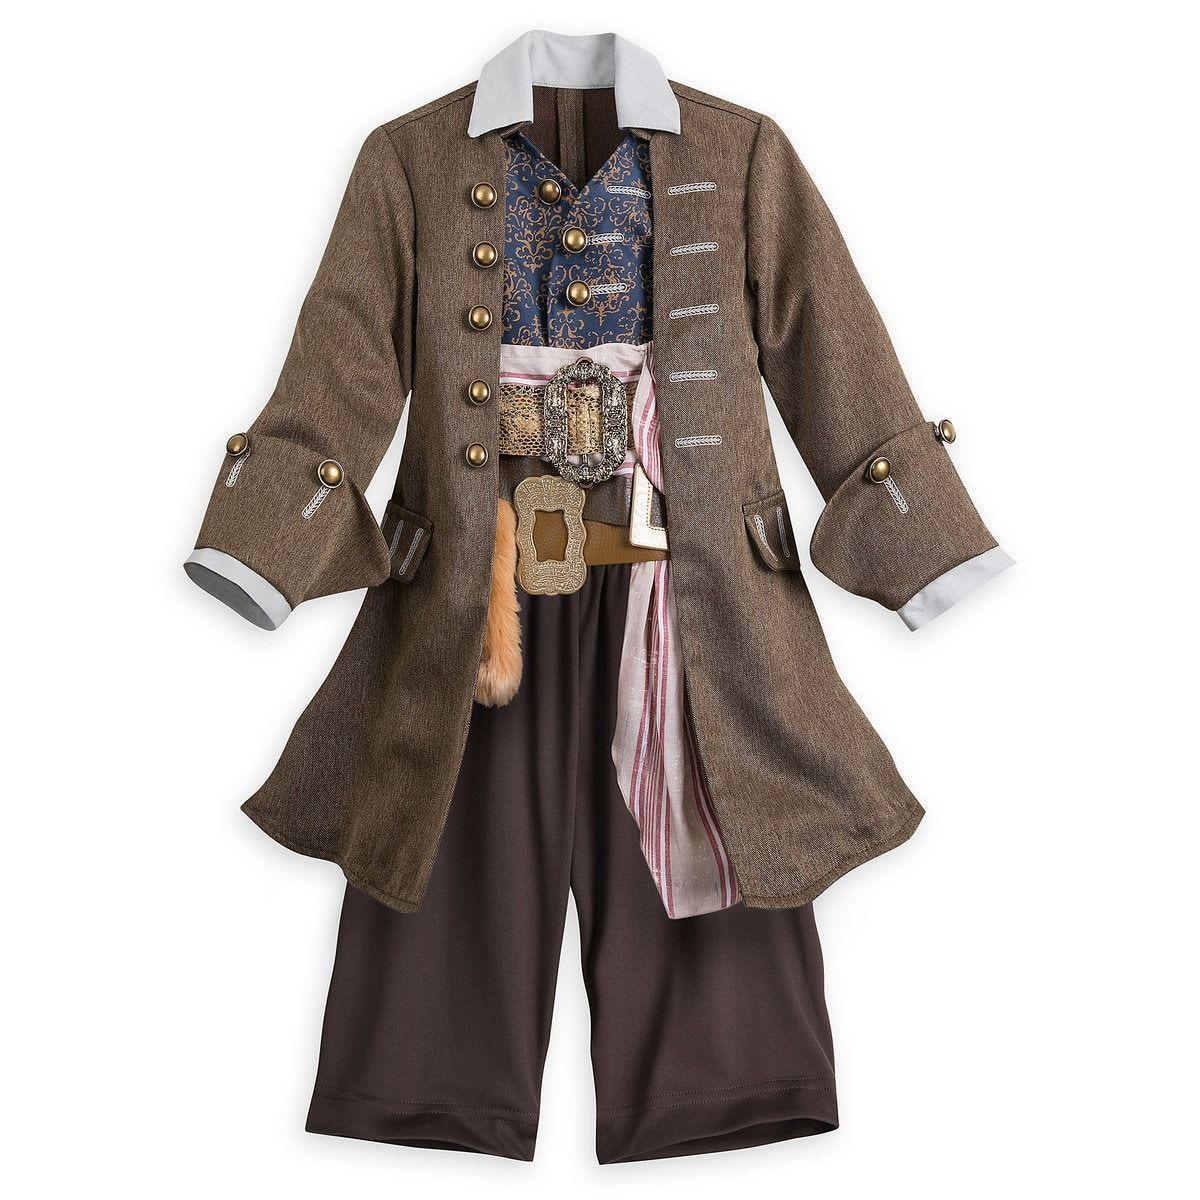 Captain Jack Sparrow Costume for Kids #diypiratecostumeforkids Captain Jack Sparrow Costume for Kids #diypiratecostumeforkids Captain Jack Sparrow Costume for Kids #diypiratecostumeforkids Captain Jack Sparrow Costume for Kids #diypiratecostumeforkids